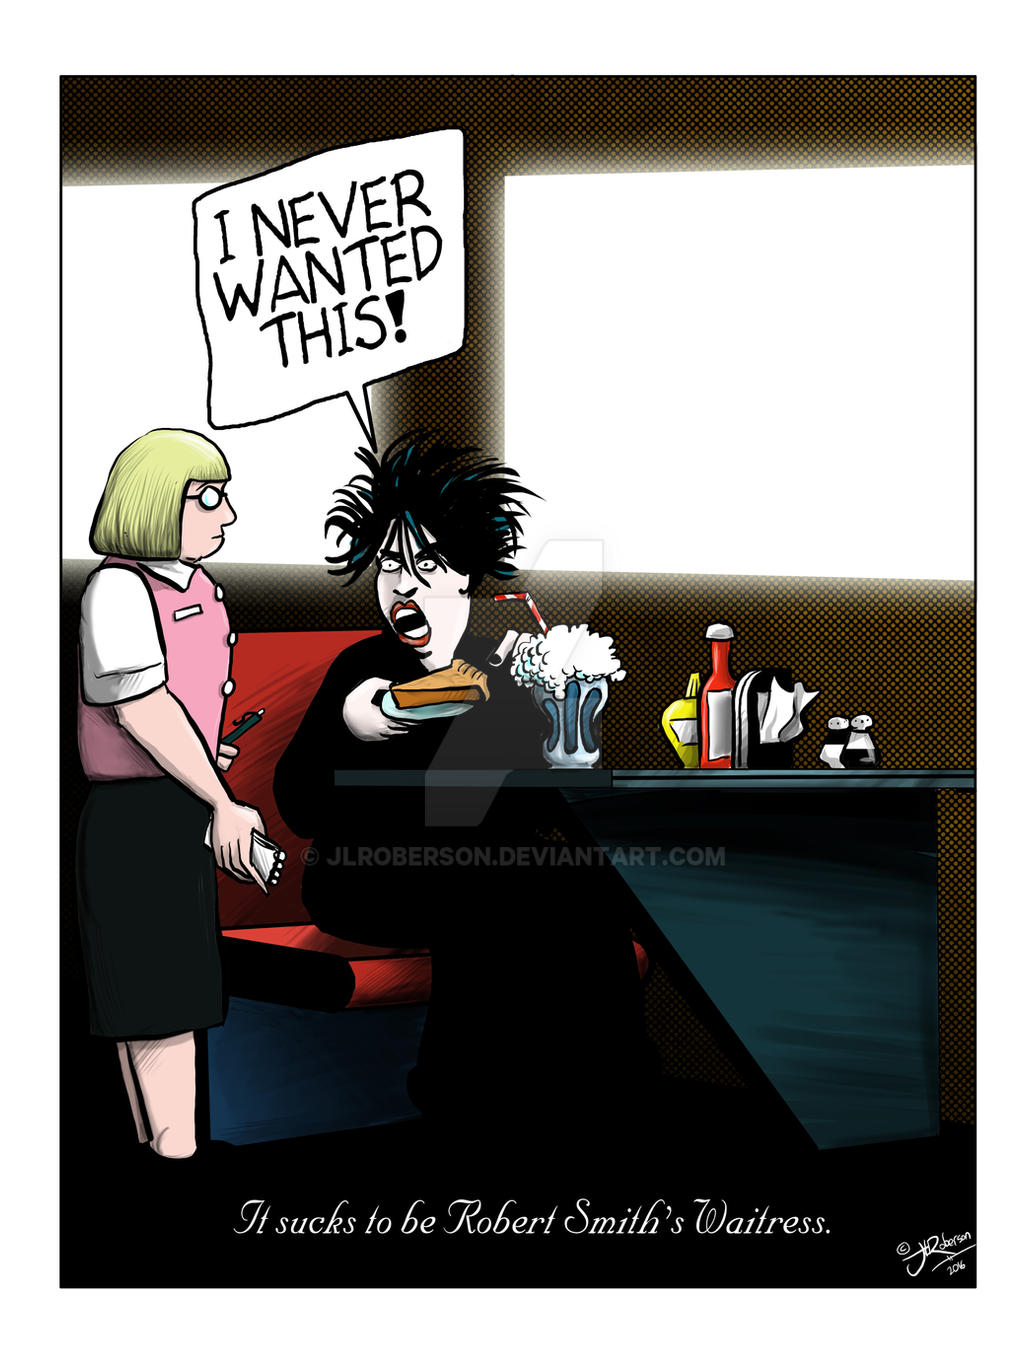 Robert Smith's Waitress (ink/color)